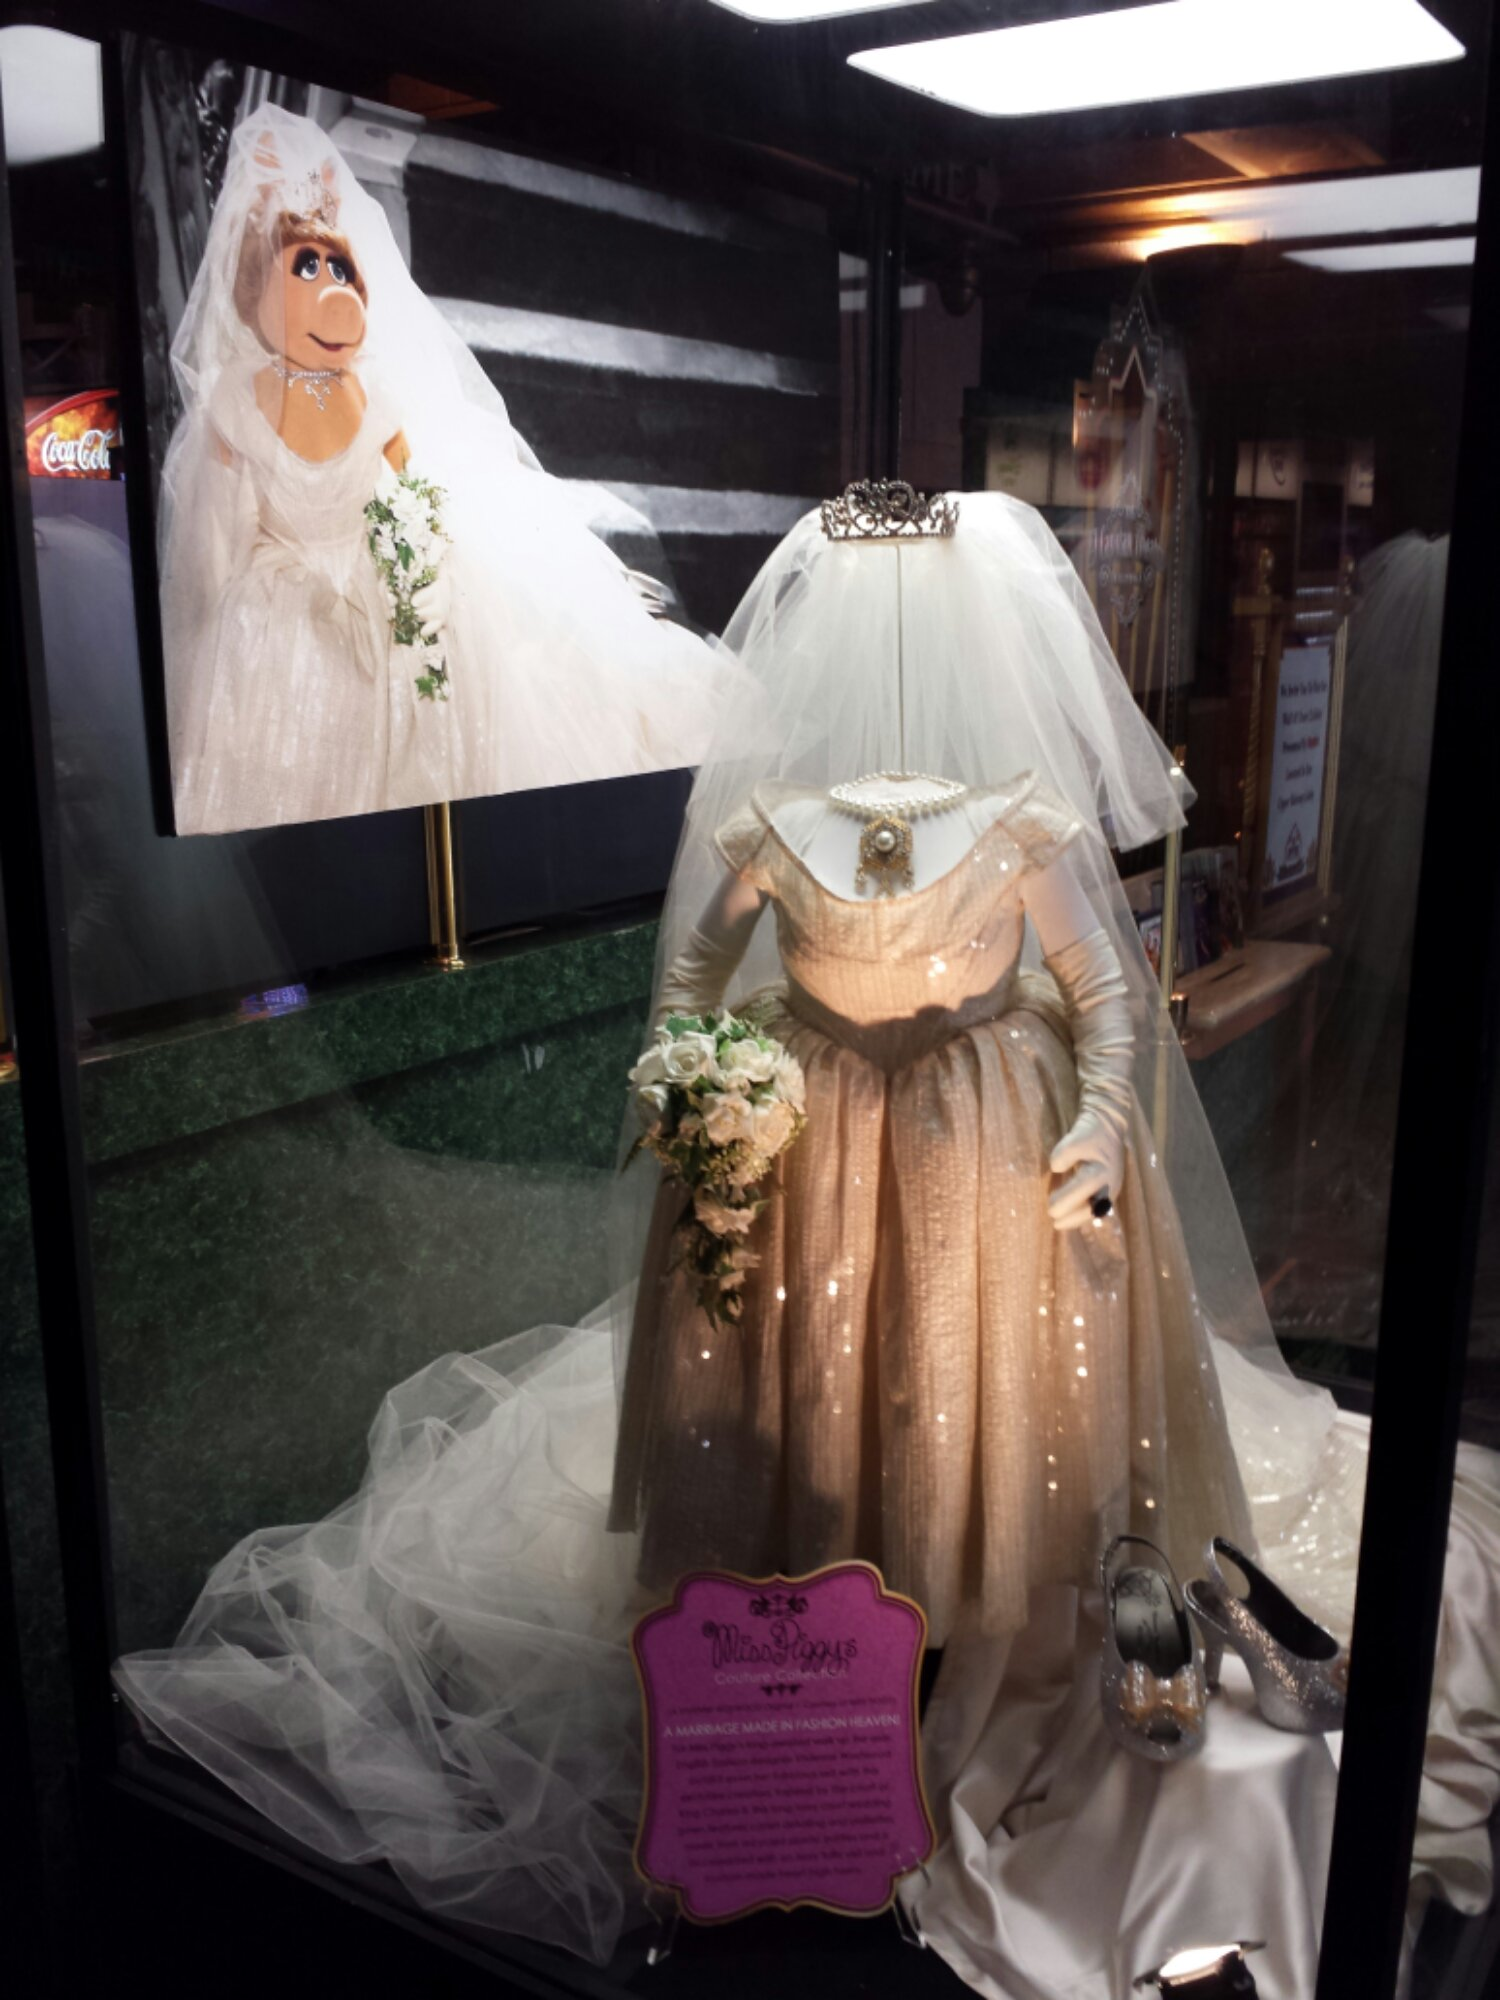 Miss Piggy's wedding gown in the El Capitan Lobby #MuppetsMostWanted